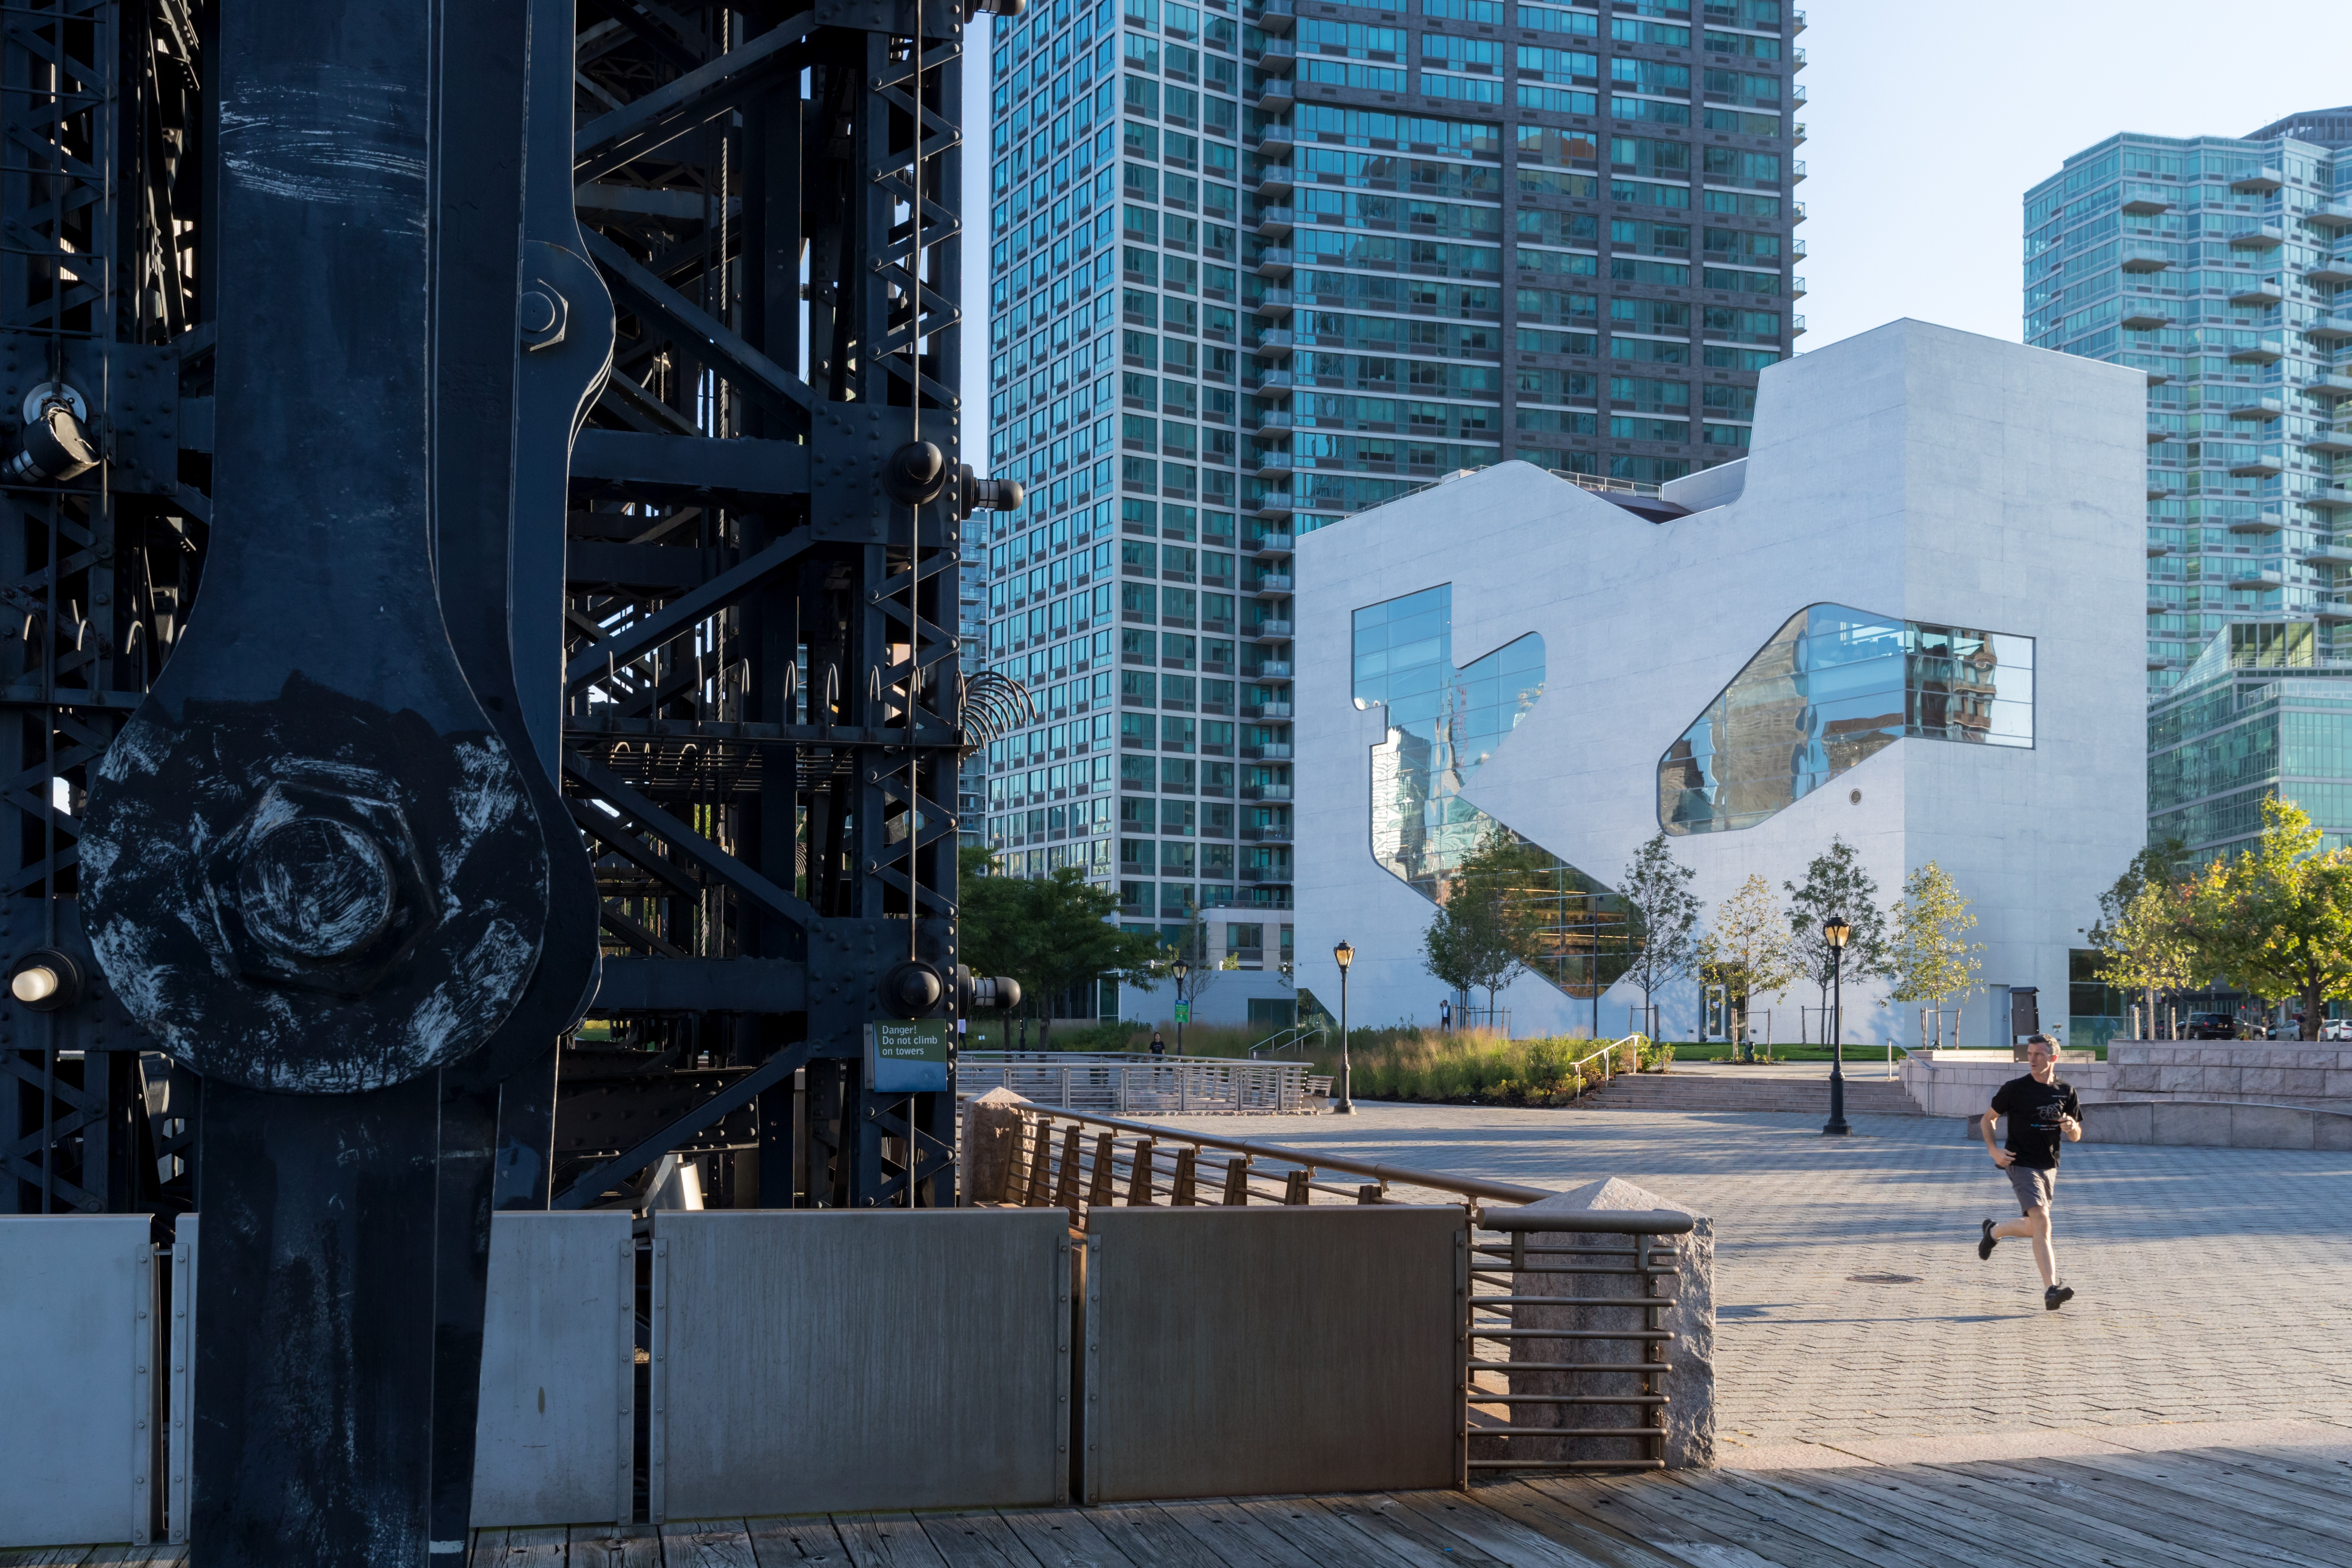 https://stevenholl.sfo2.digitaloceanspaces.com/uploads/projects/project-images/IB.jpg